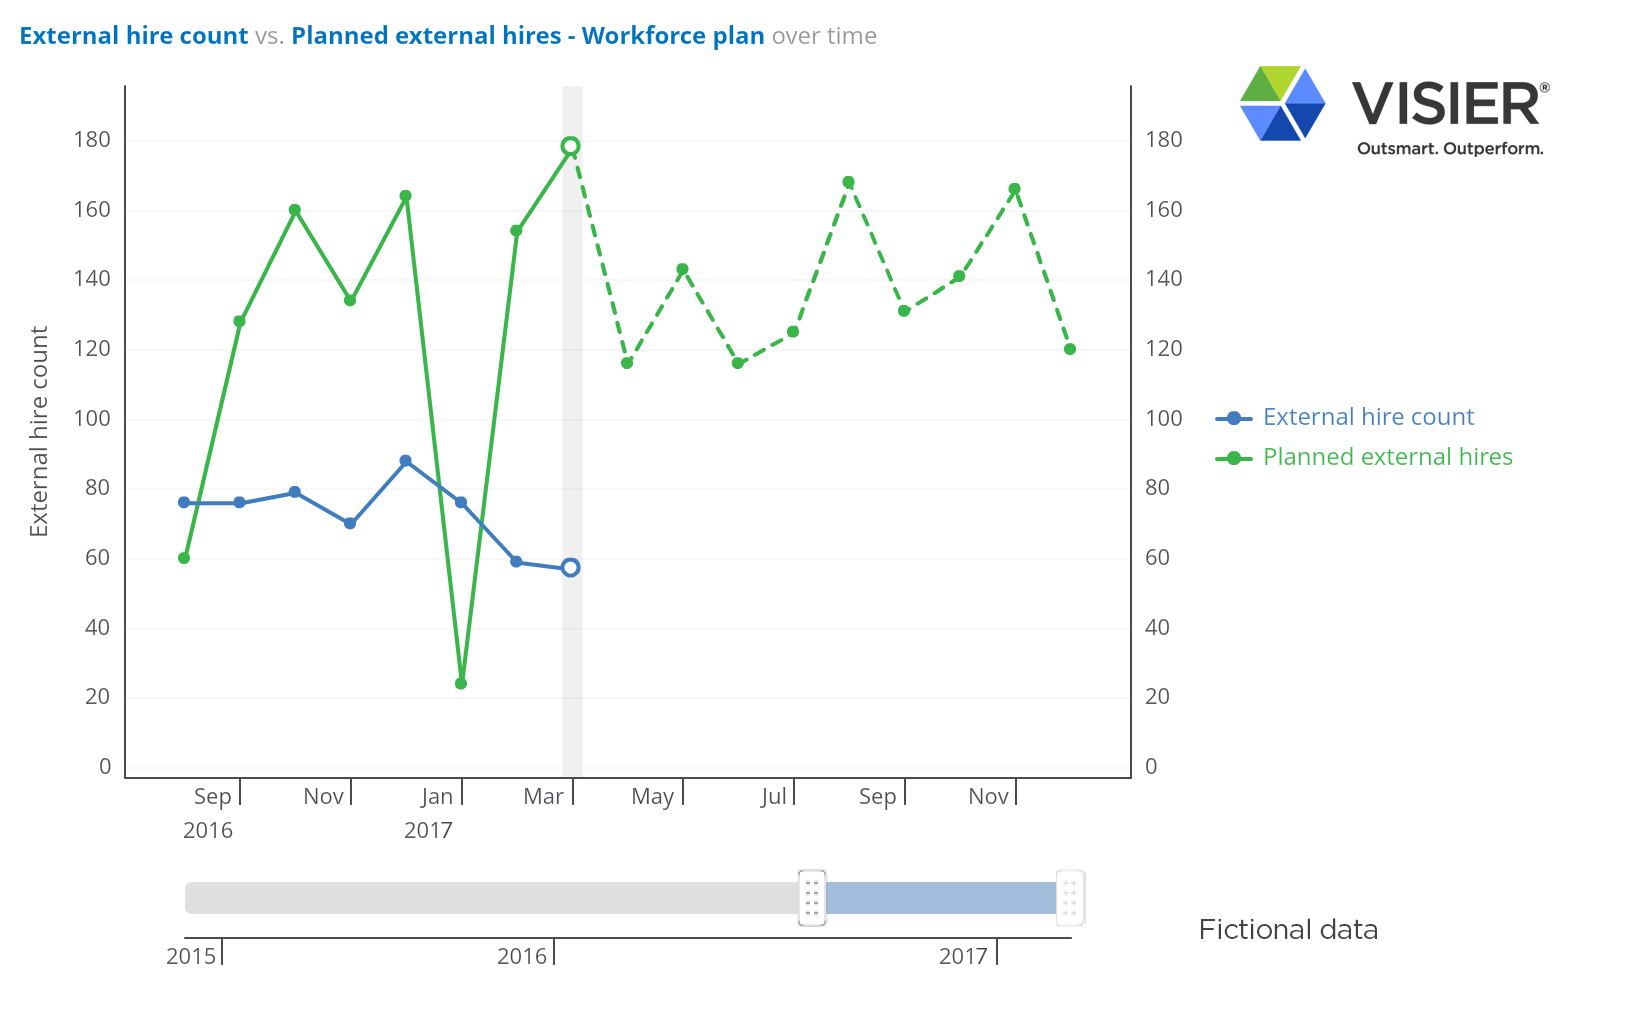 Data visualization a showing workforce plan comparing external hire count and planned external hires over the next three years